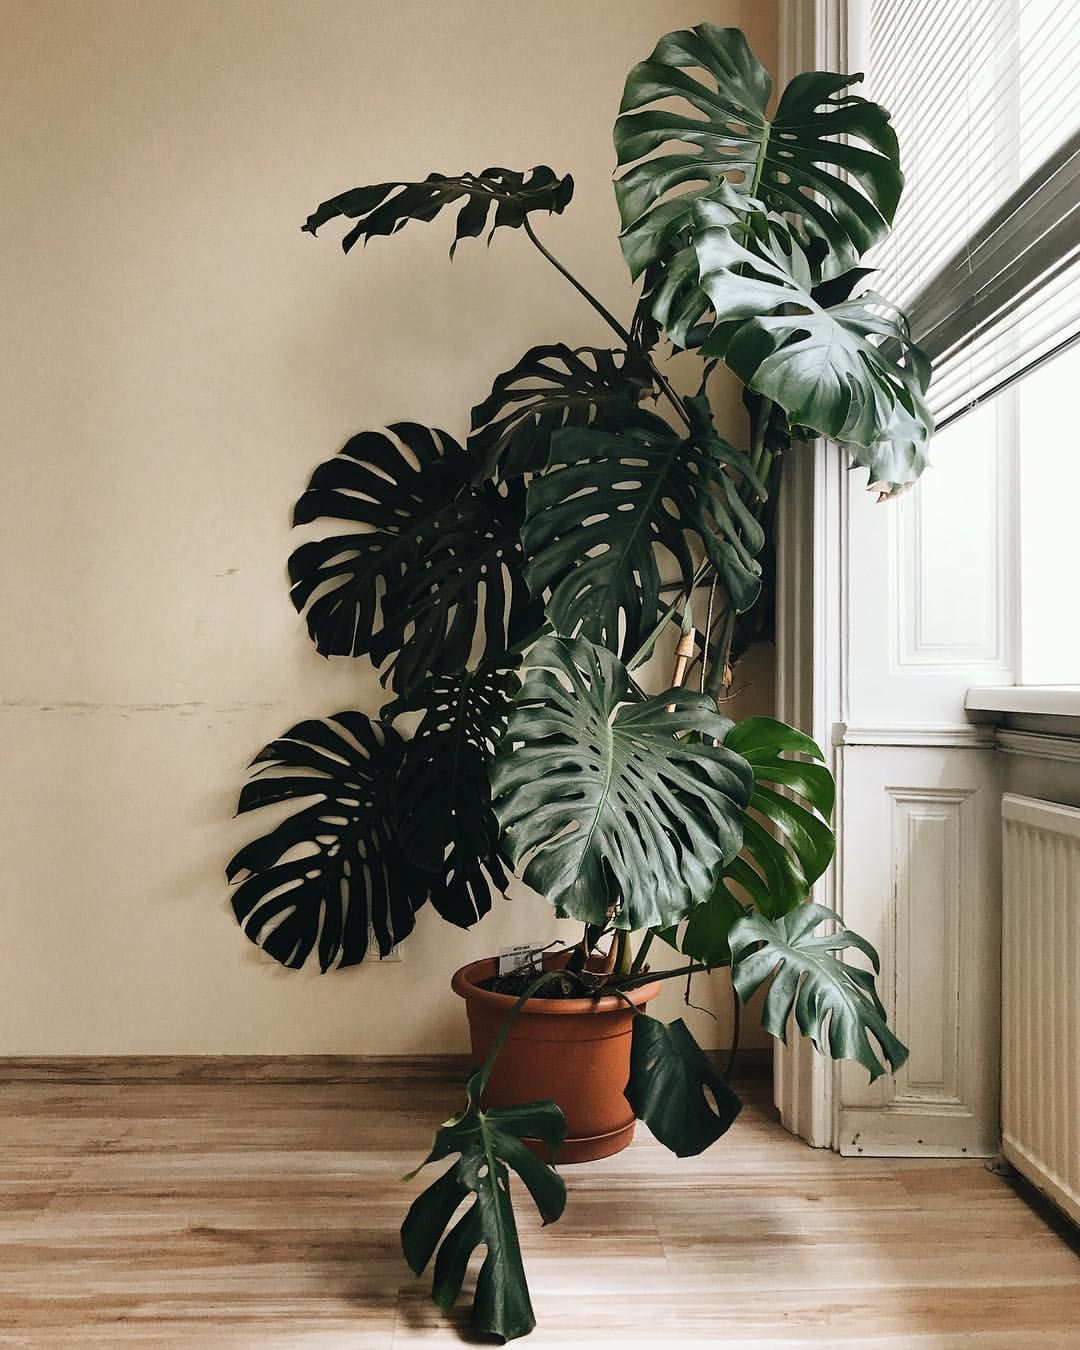 If You Spot Such A Great Specimen Of Monstera Deliciosa Even Friday Is A Good Day To Celebrate Monstera Monday Big House Plants Hanging Plants Plants